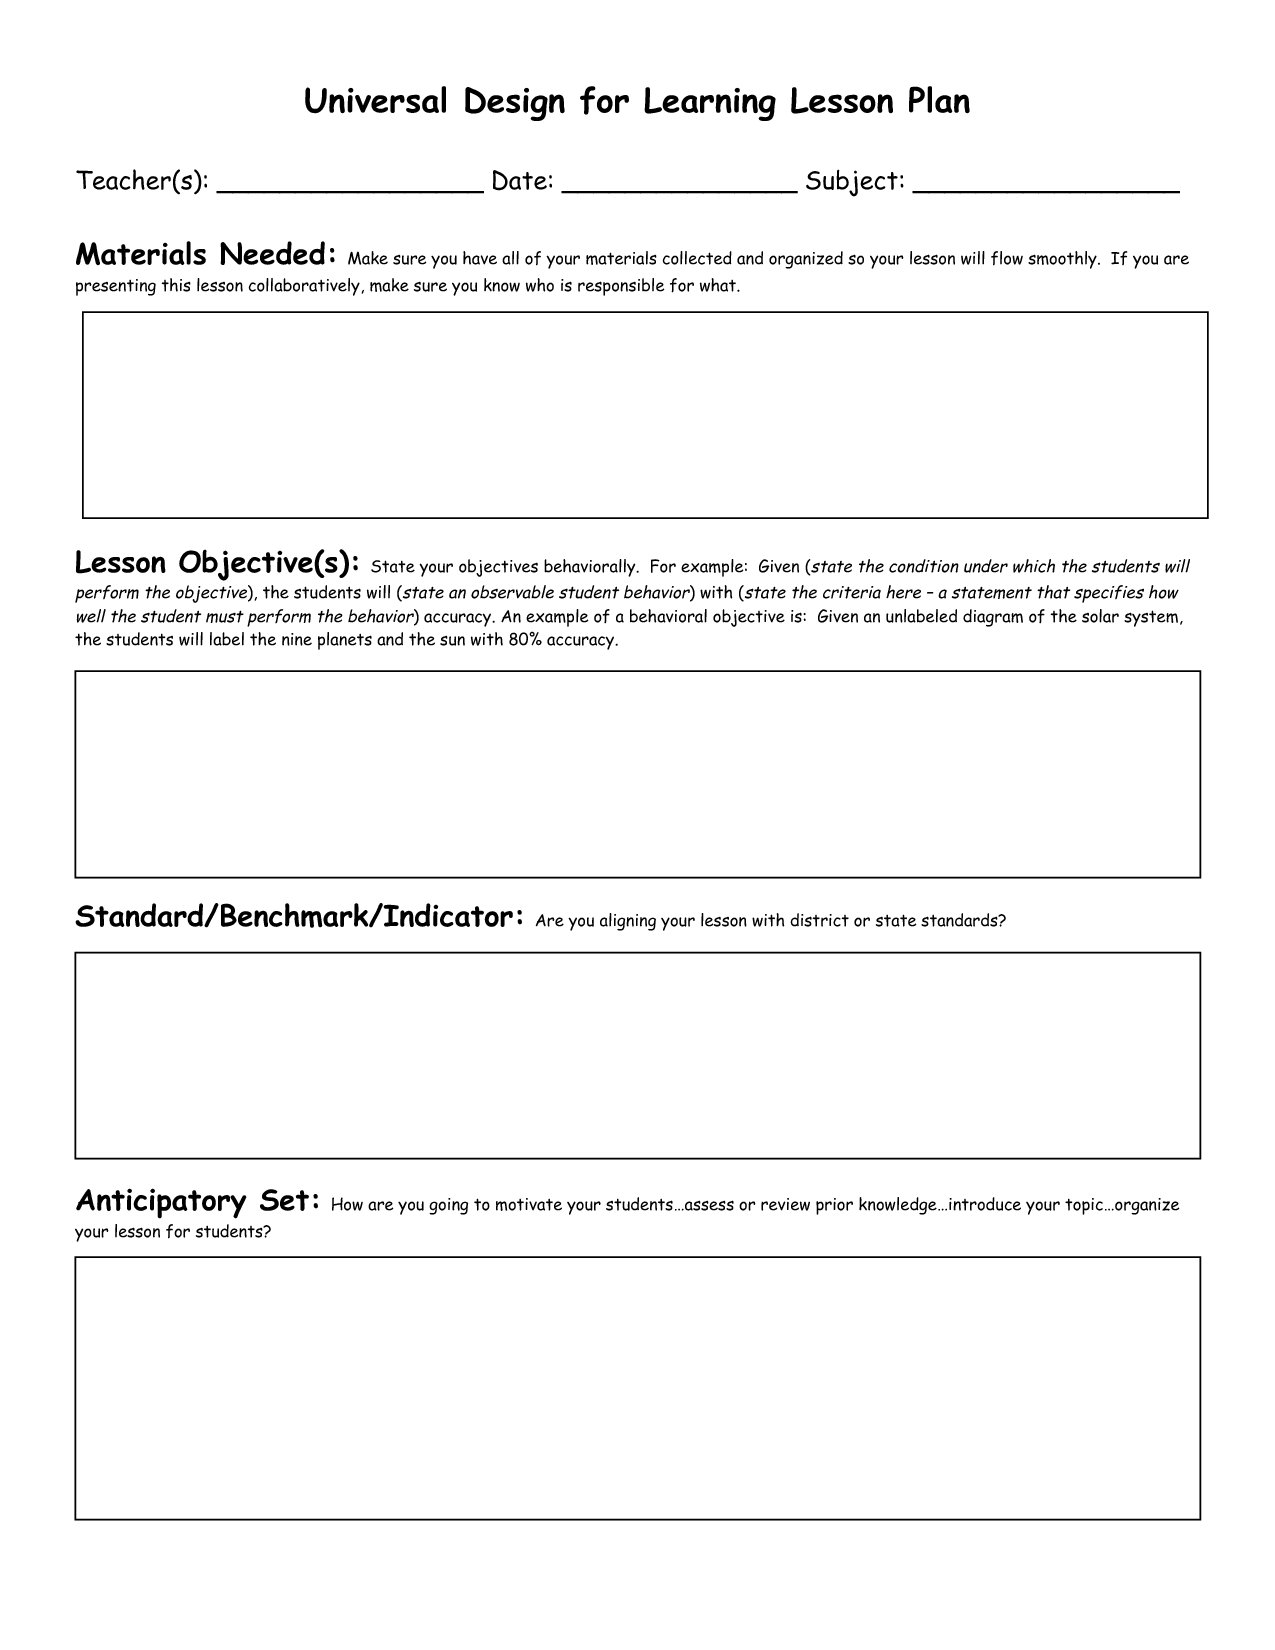 singapore math lesson plan template - lesson plan template ideas on pinterest lesson plan